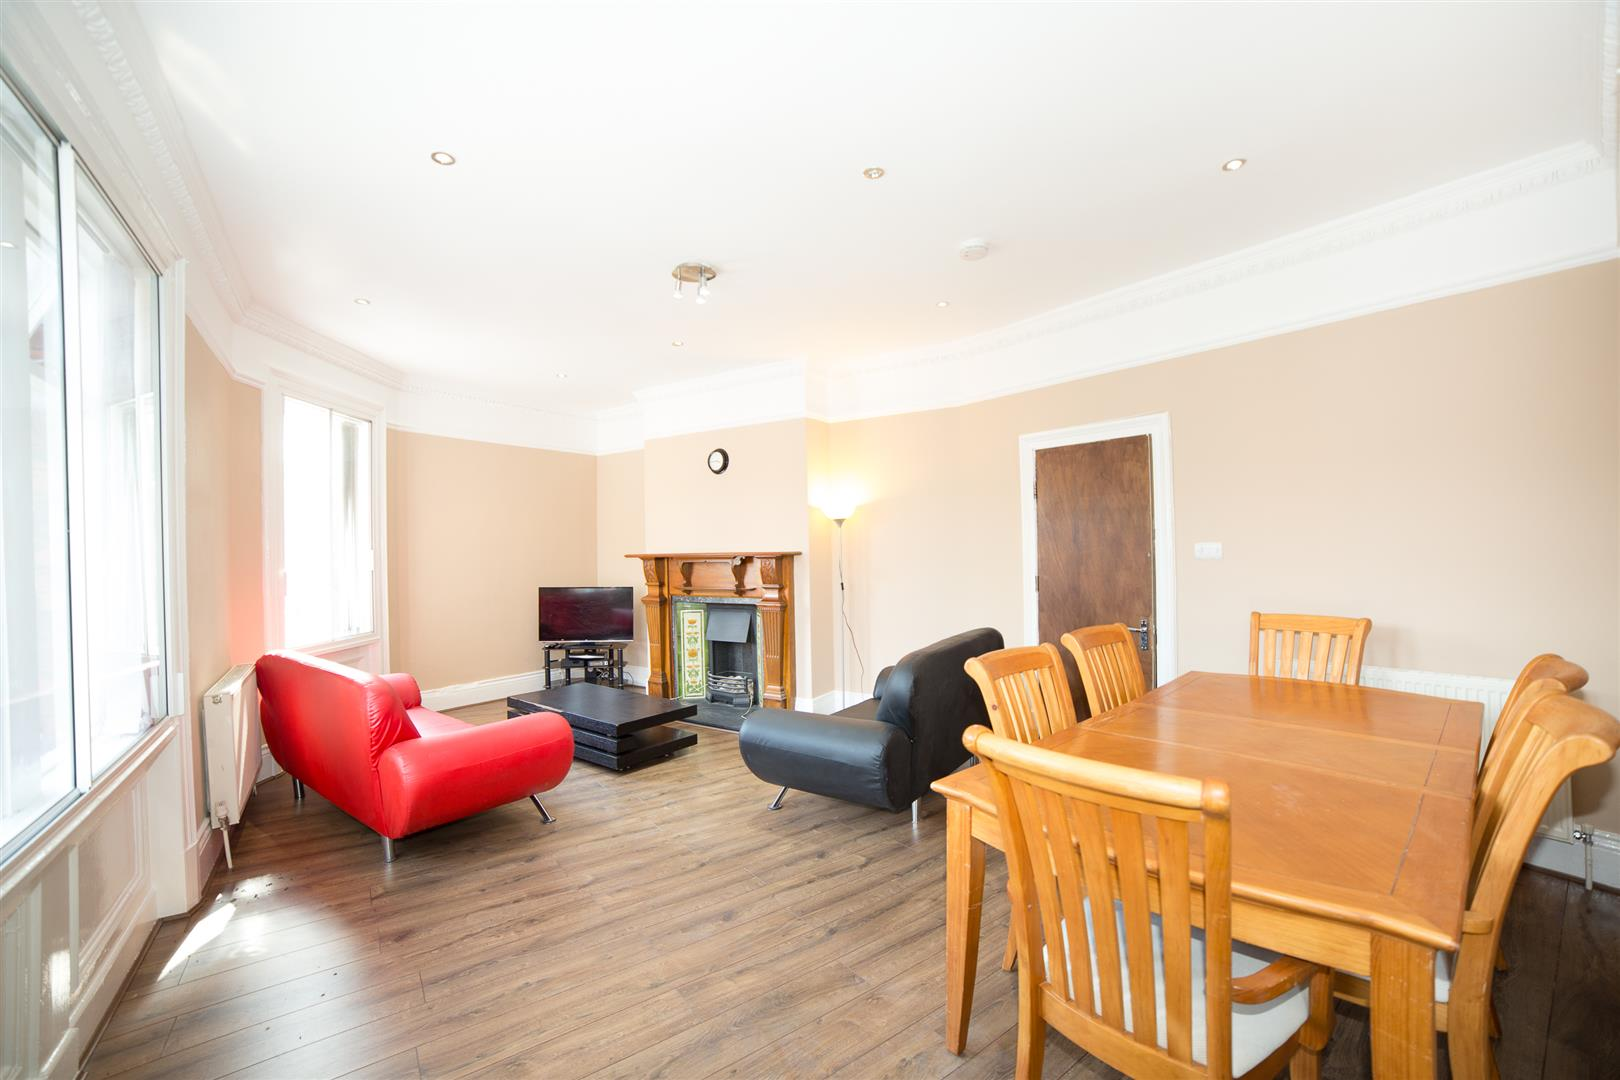 7 bed maisonette to rent in Newcastle Upon Tyne, NE2 1LB  - Property Image 3